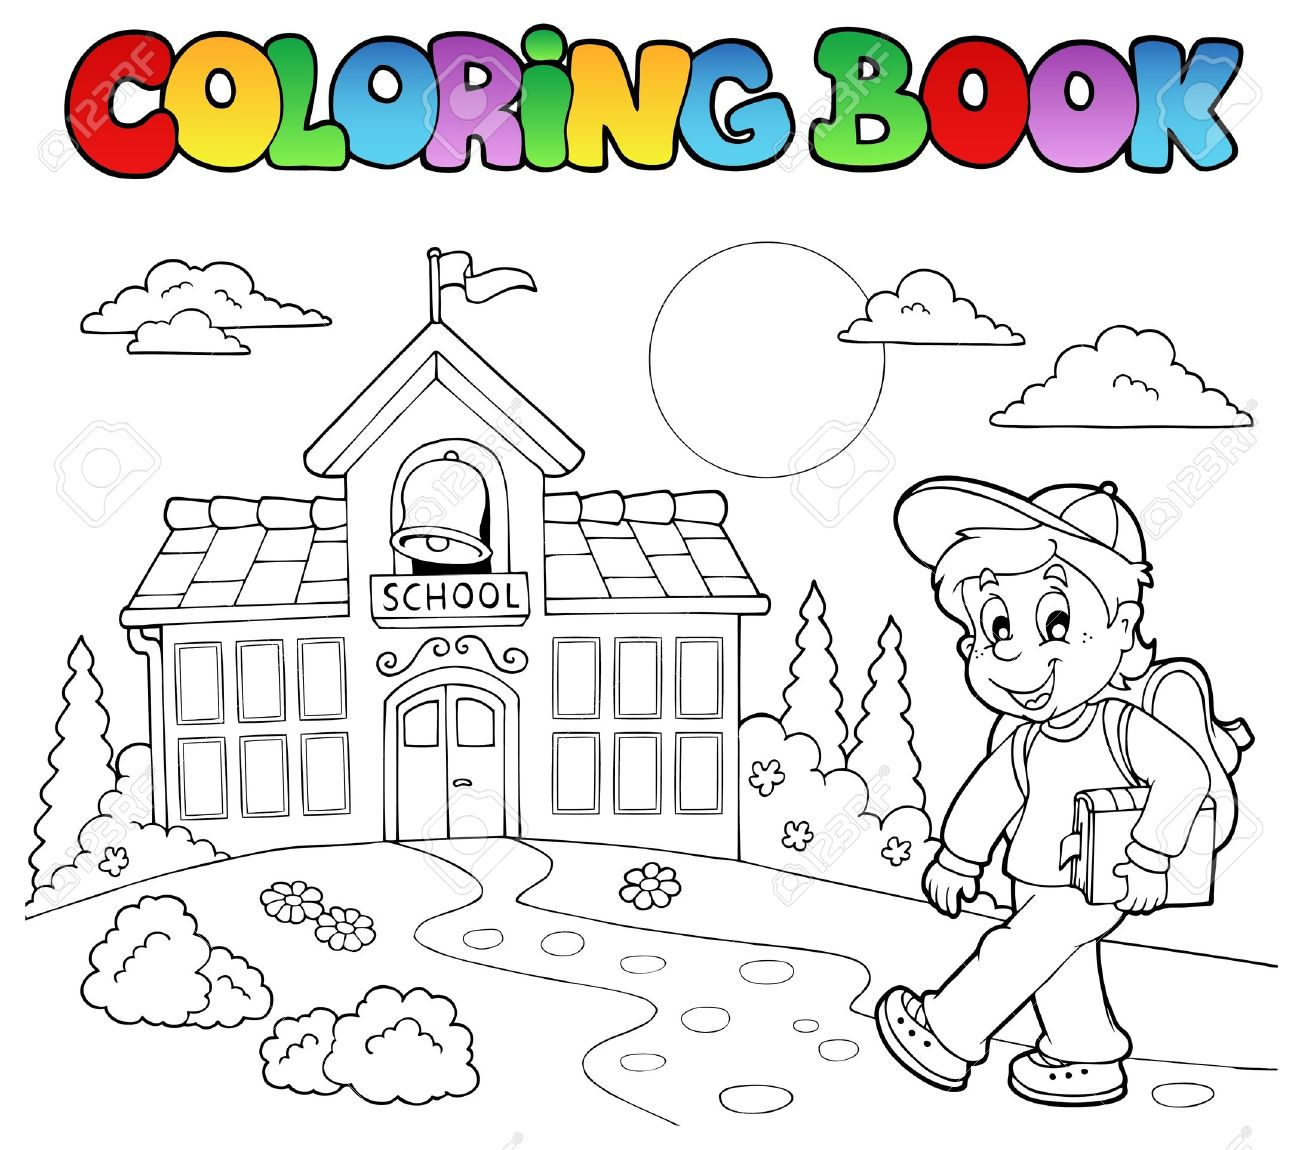 Coloring book school - Coloring Book School Cartoons Stock Vector 10354153